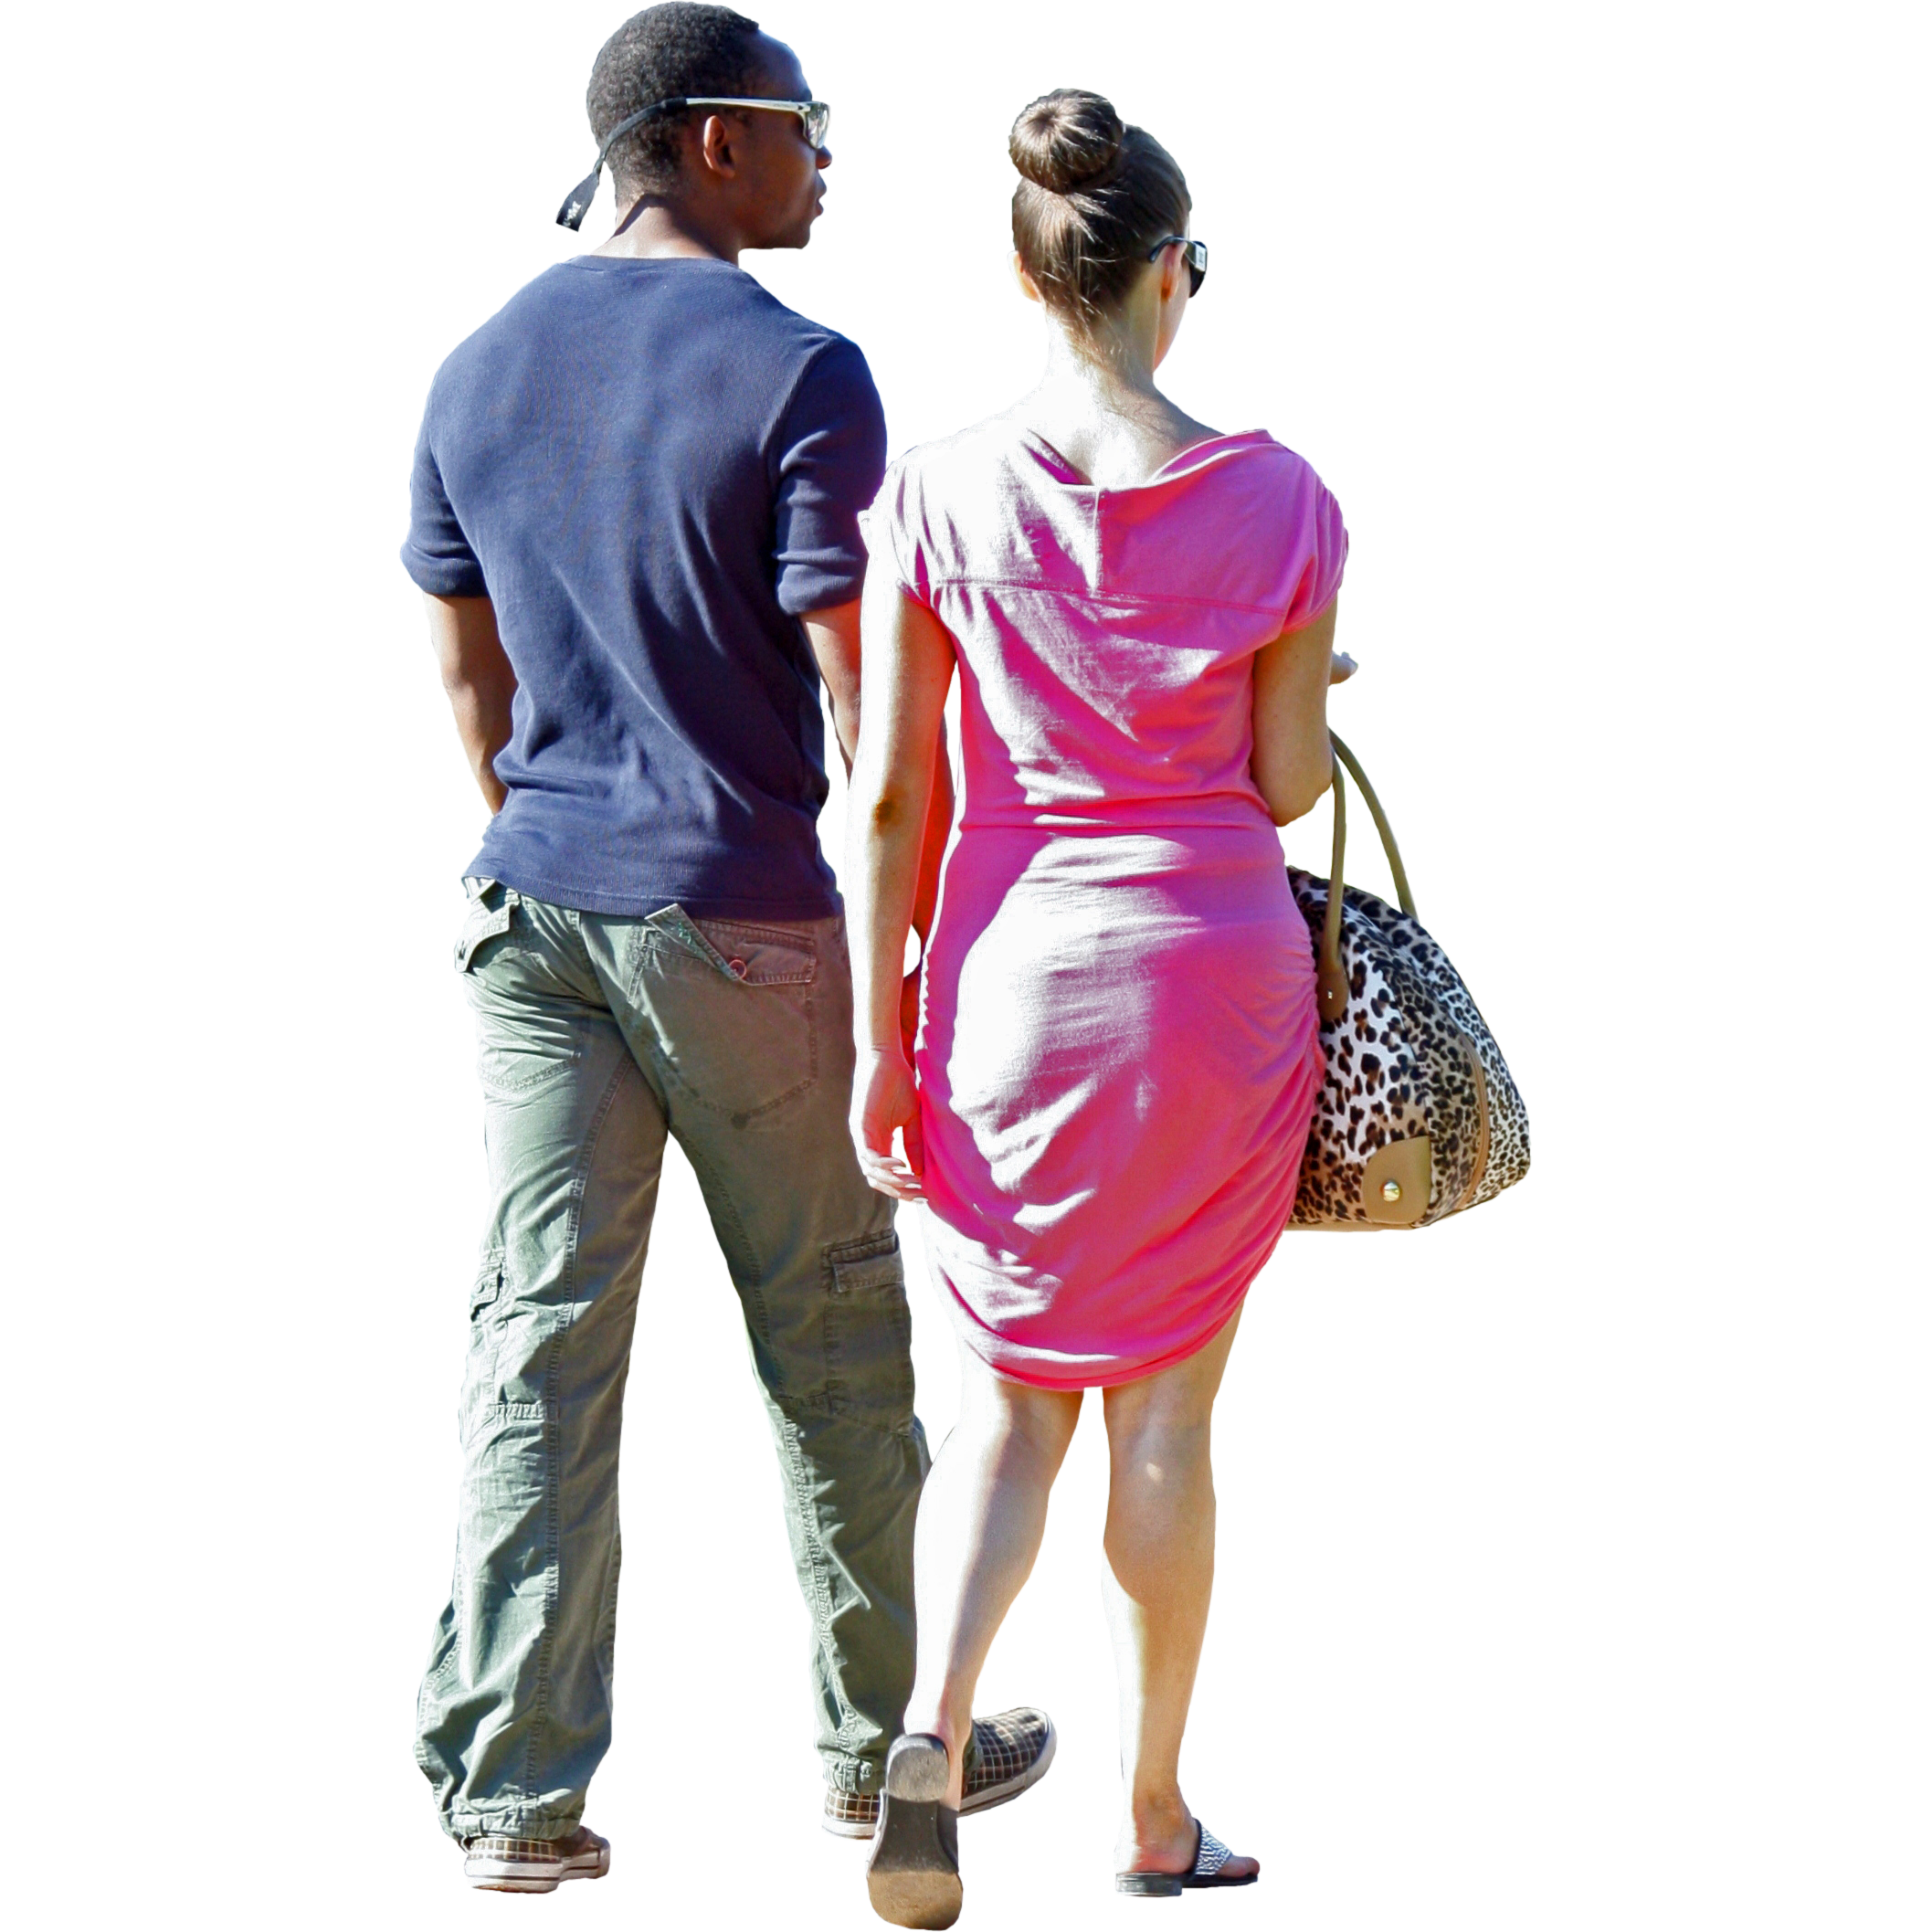 Couple walking away png. People charlie bruzzese share